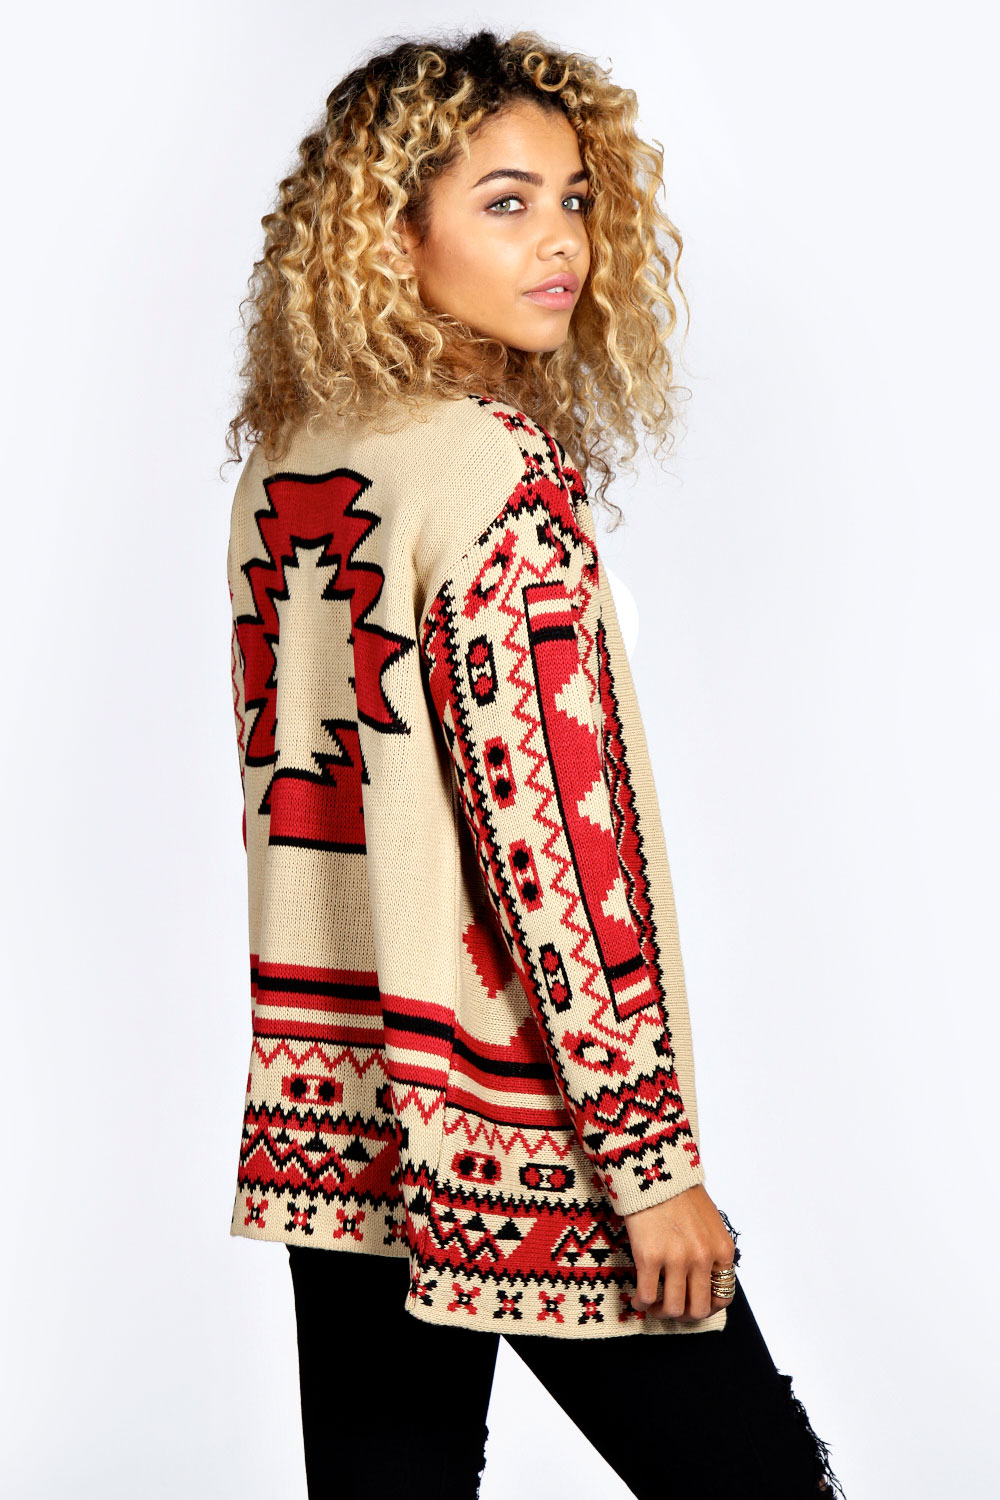 Shop for aztec sweater online at Target. Free shipping on purchases over $35 and save 5% every day with your Target REDcard.